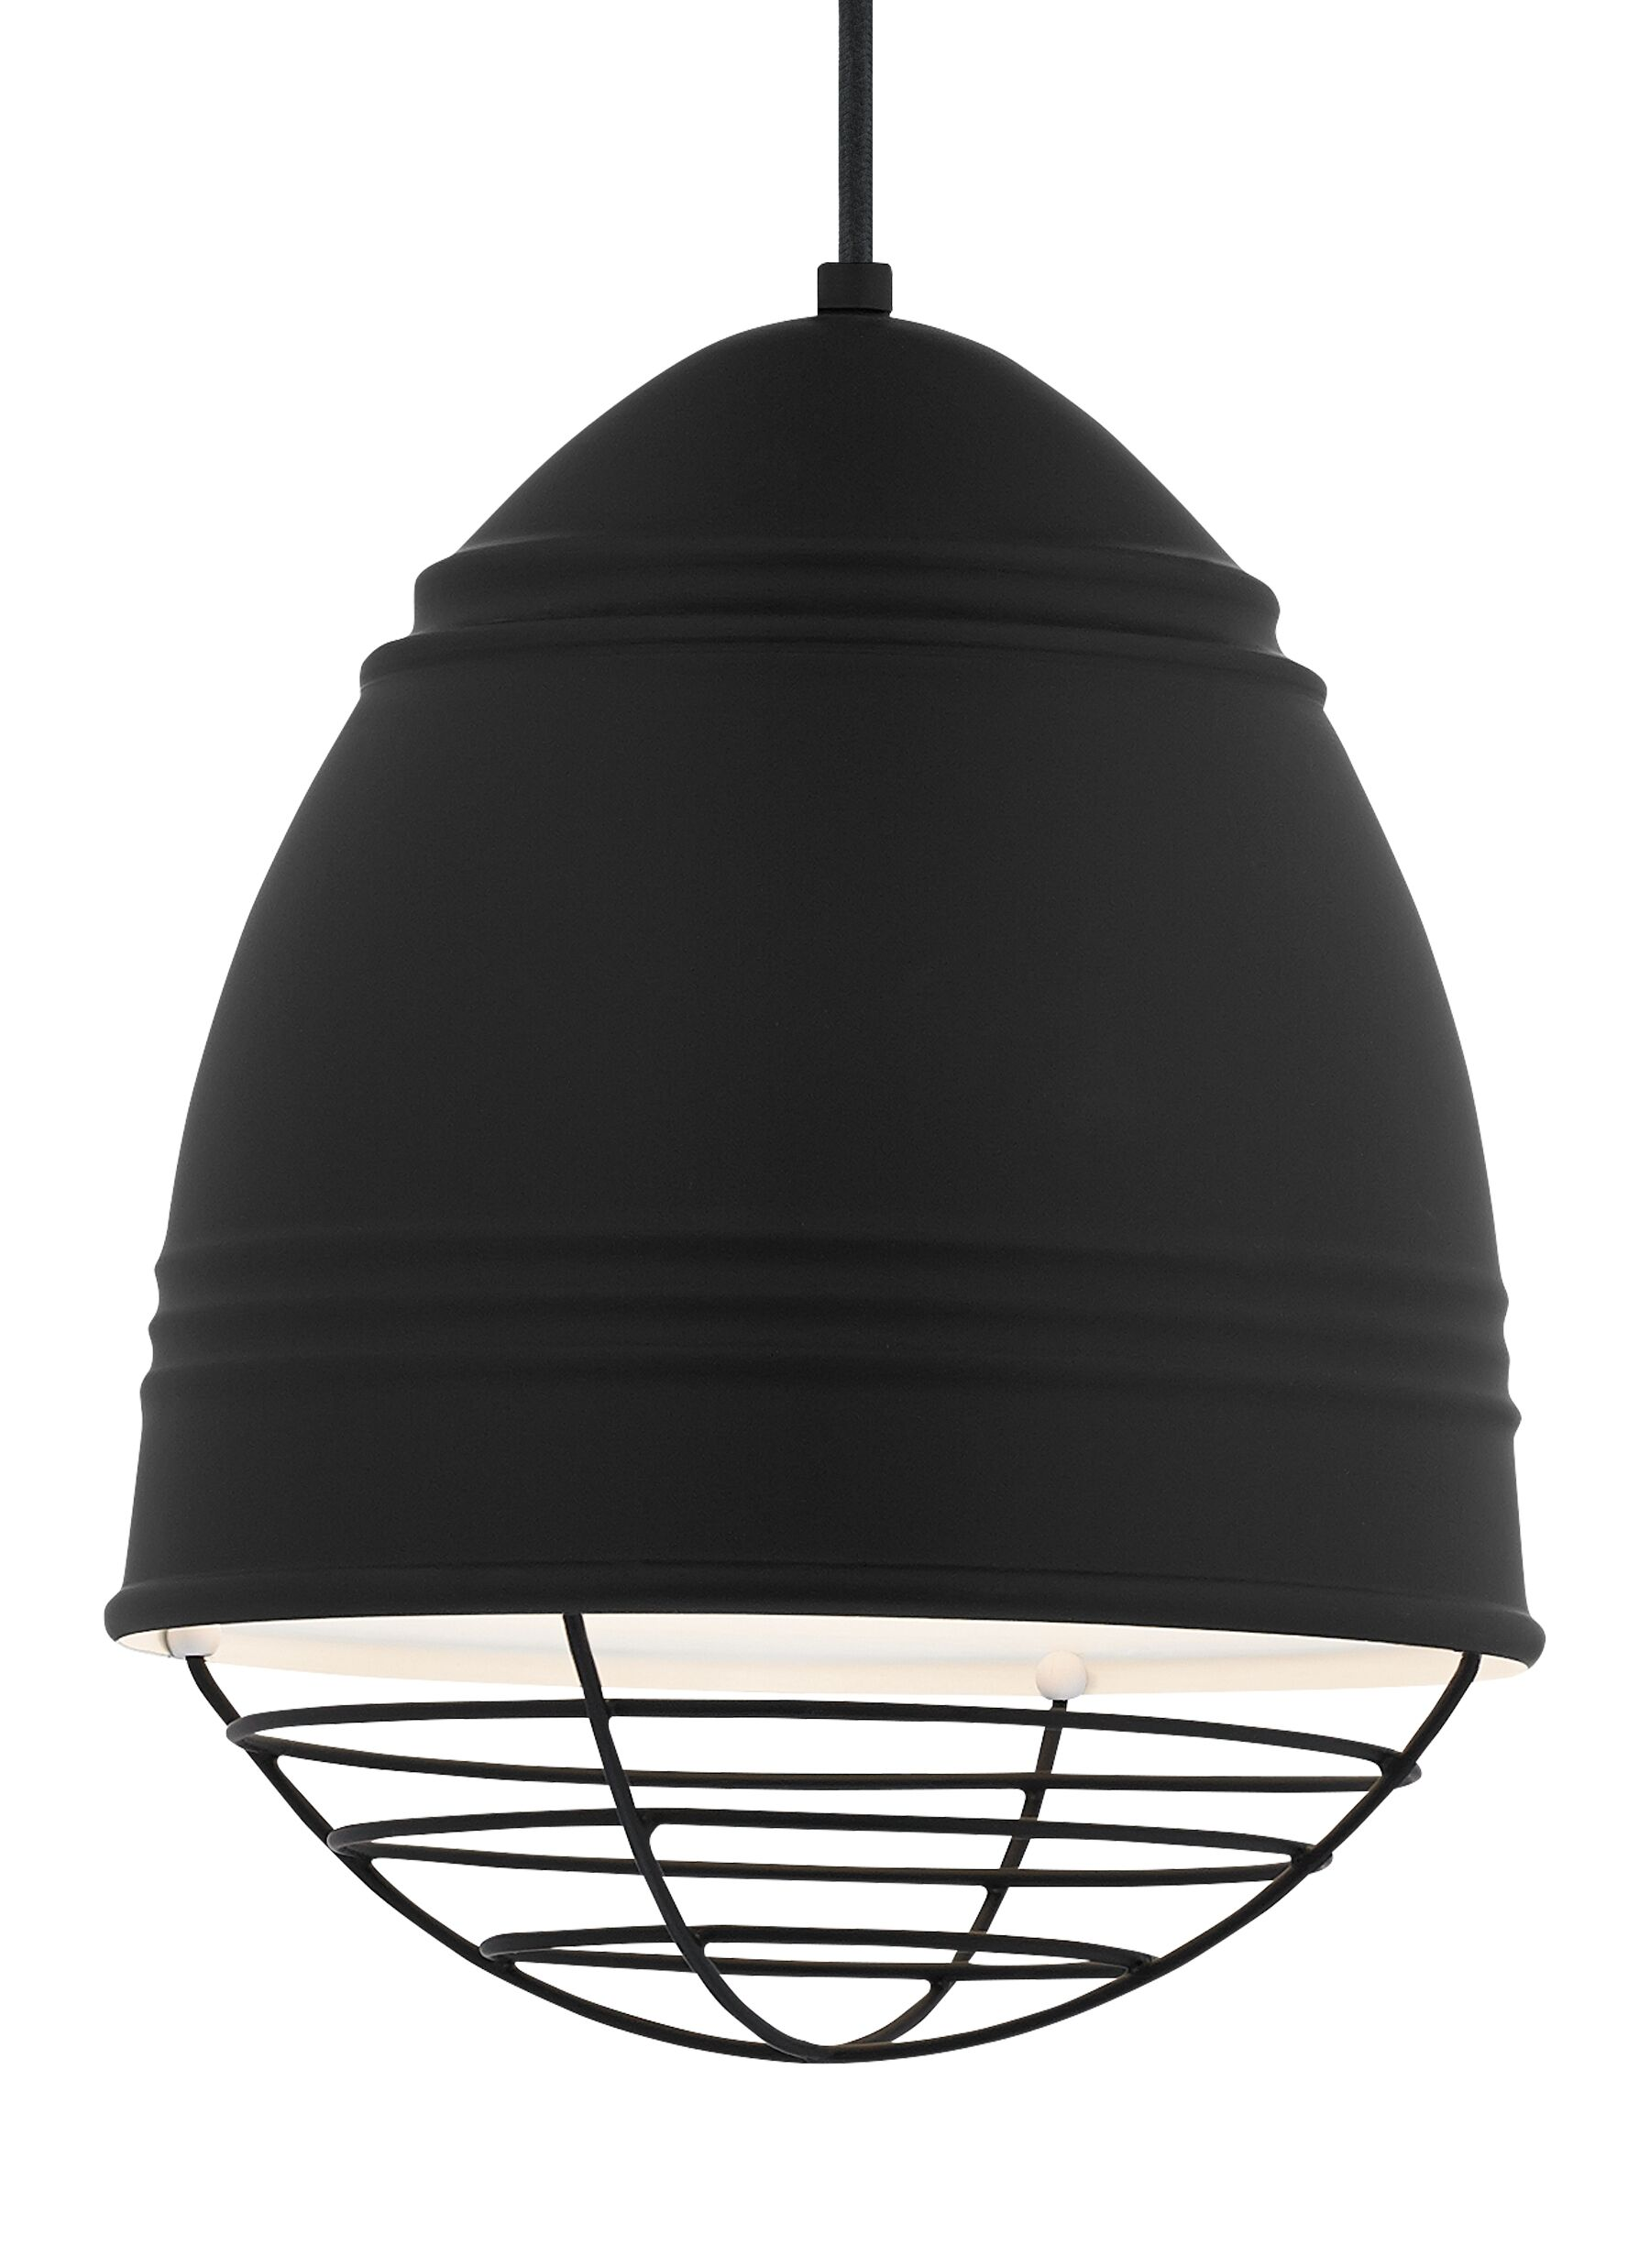 Else 1-Light Bell Pendant Finish: Black, Shade Color: Rubberized Black/White Interior